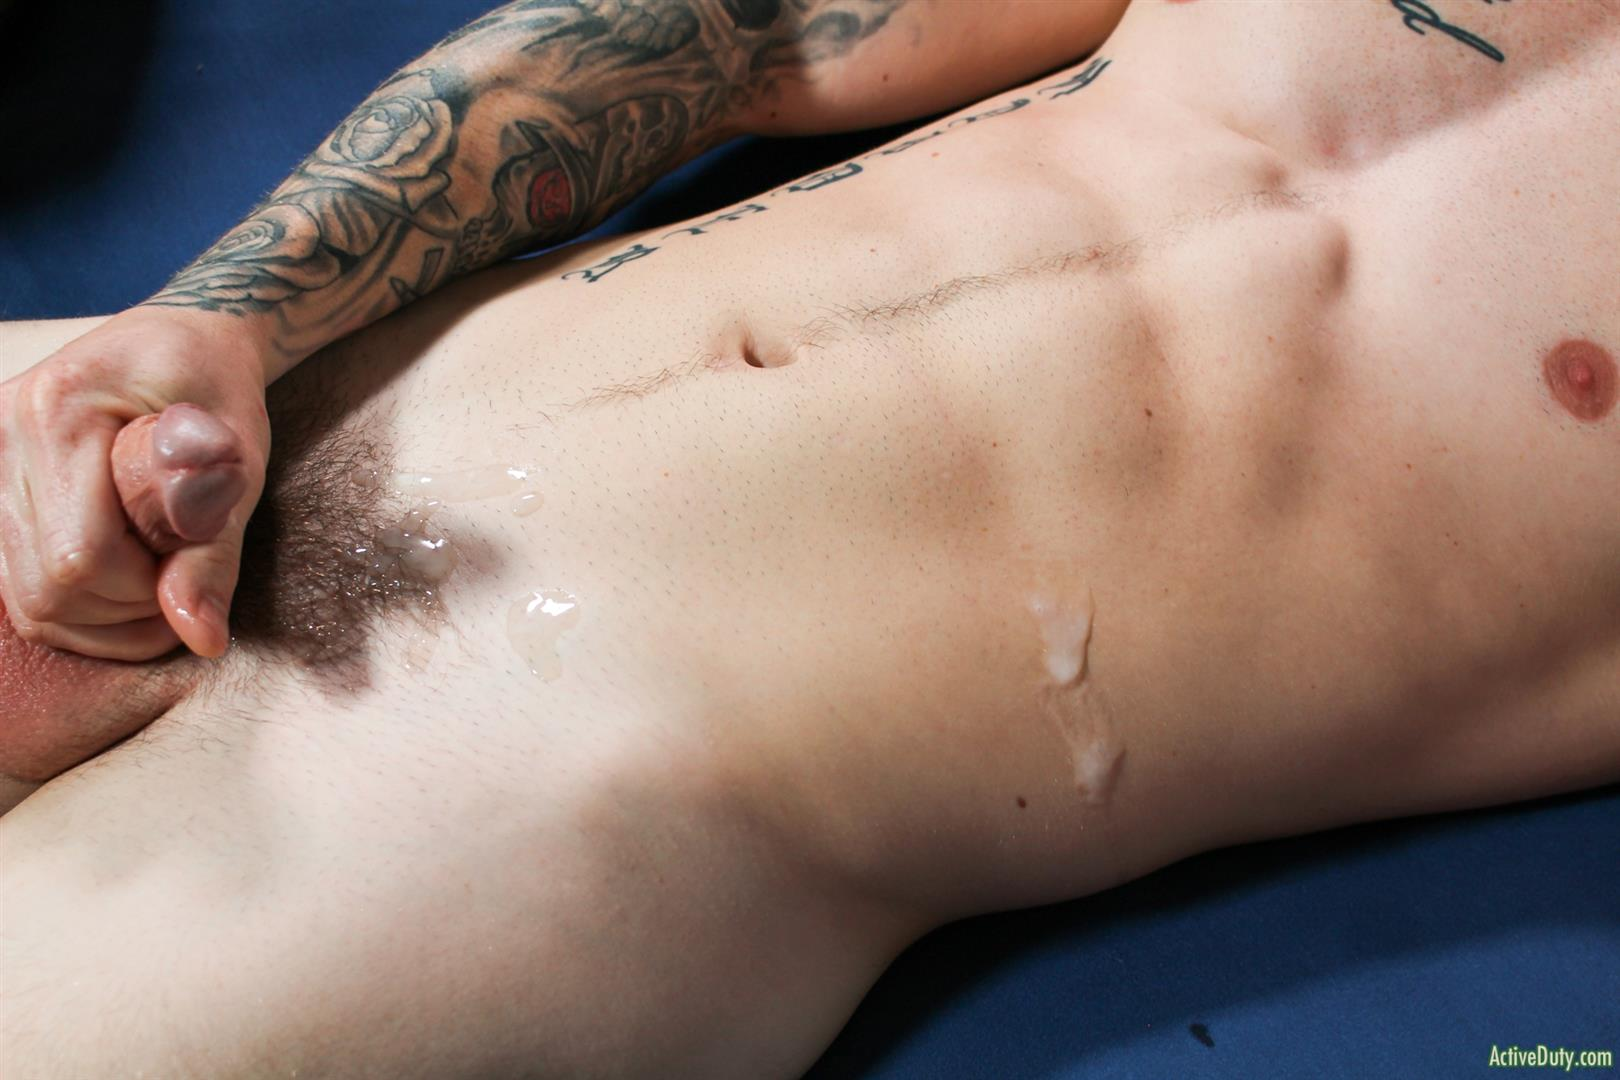 Active-Duty-Quentin-Gainz-and-Spencer-Laval-Military-Guys-Bareback-Sex-Video-15 Straight Muscular Military Guys First Bareback Fuck Session